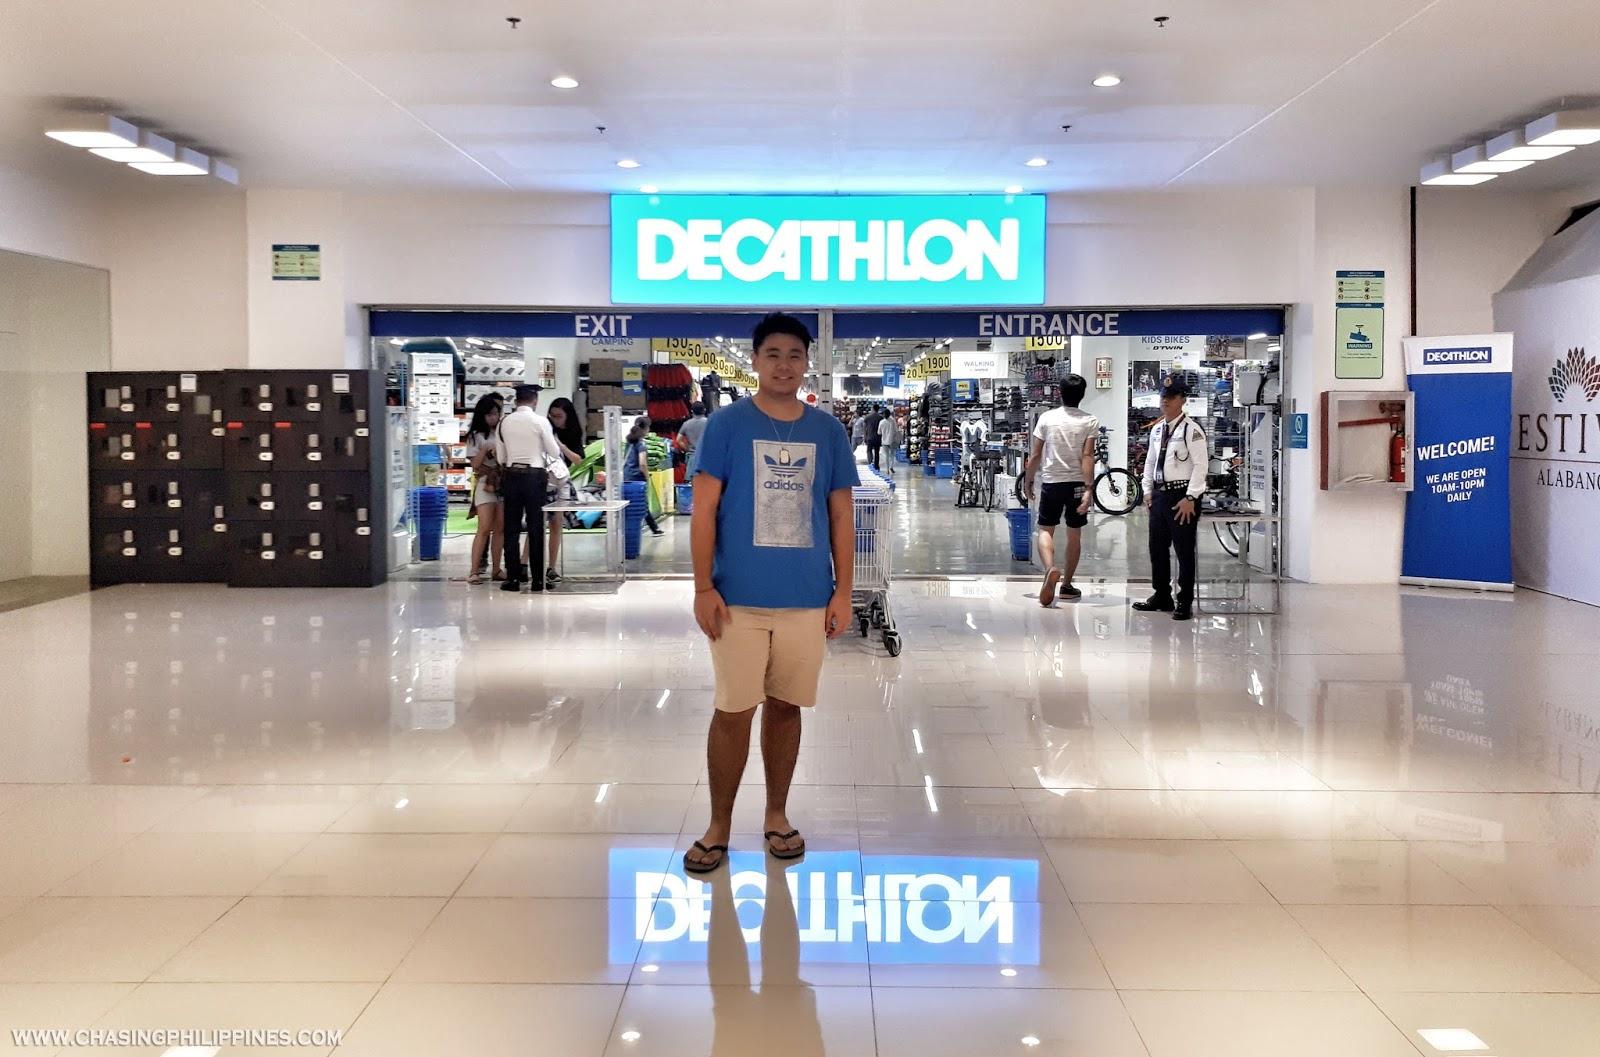 1d1b5c656 Decathlon Philippines is located at the Ground Floor of Festival Mall in  Filinvest